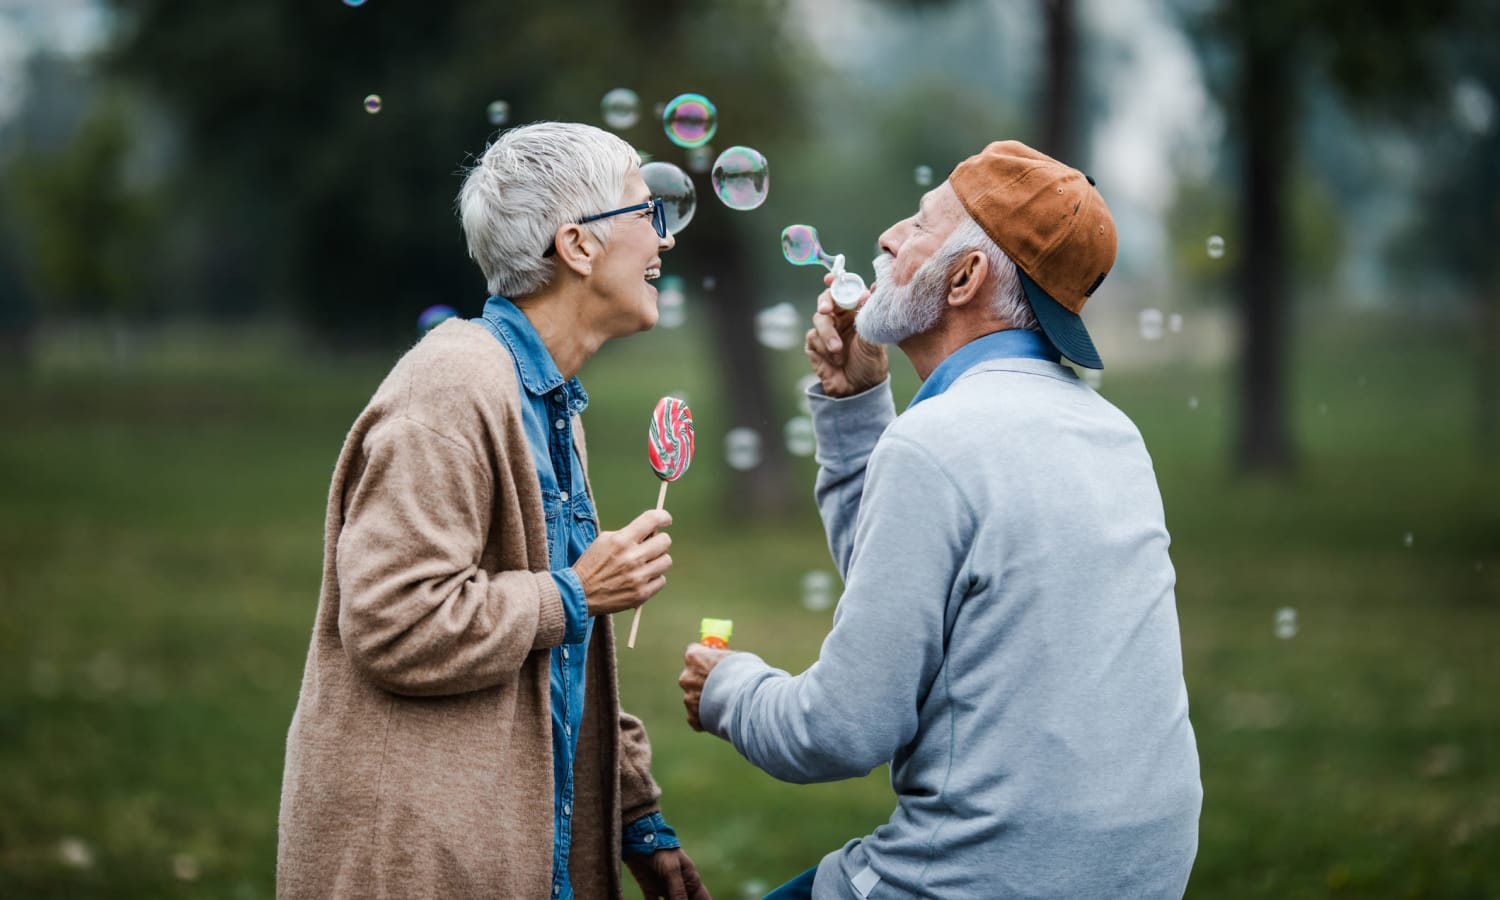 Residents blowing bubbles at New Dawn Memory Care in Colorado Springs, Colorado